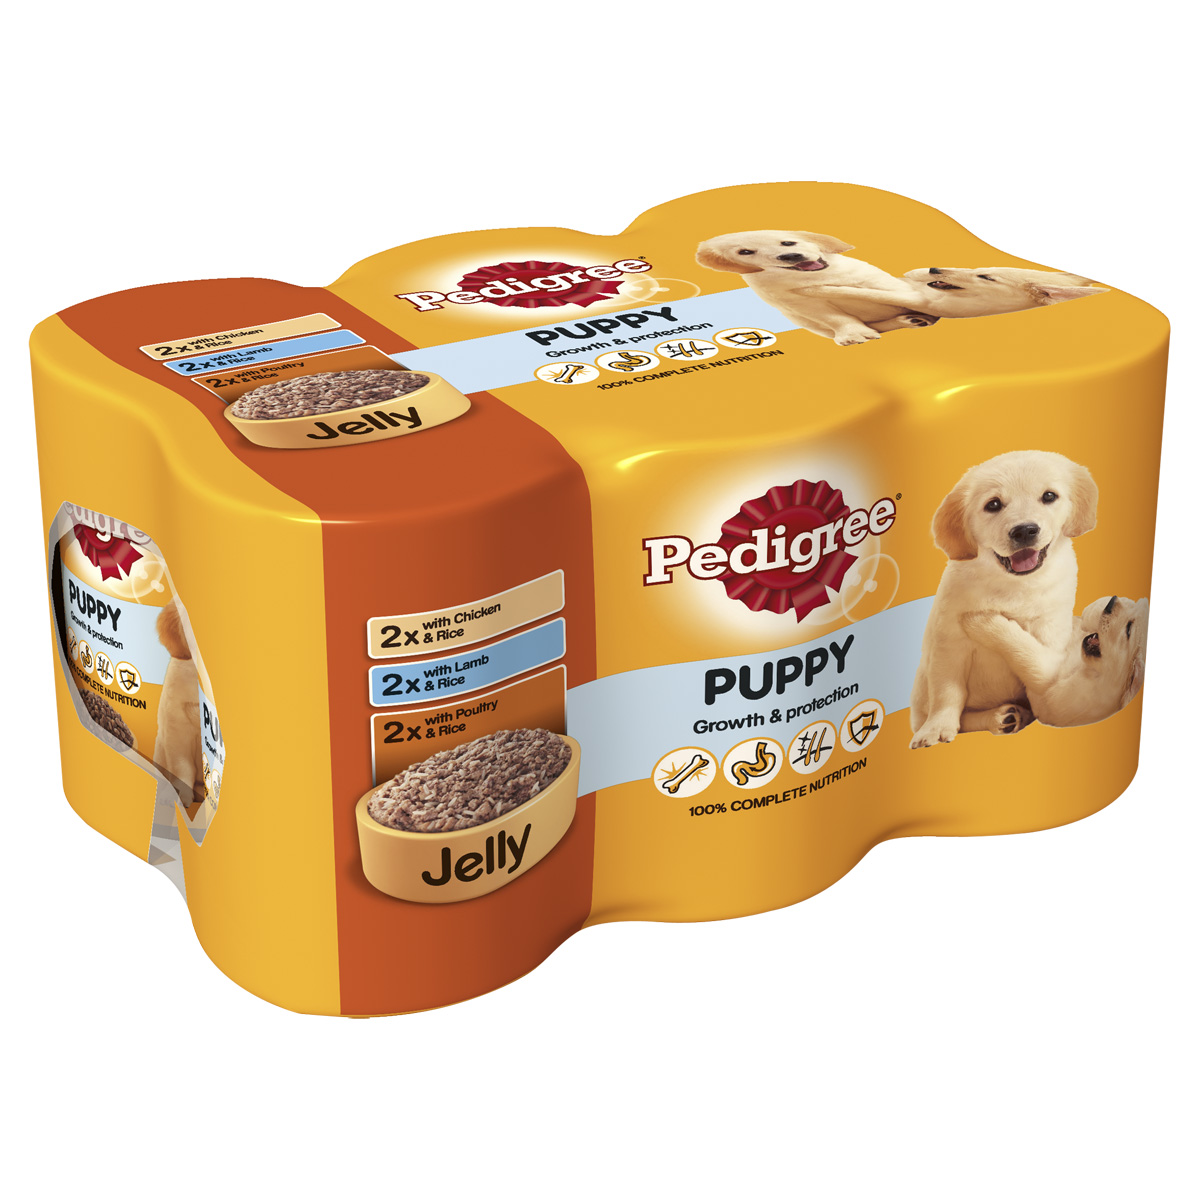 Pedigree Growth & Protection Puppy Food